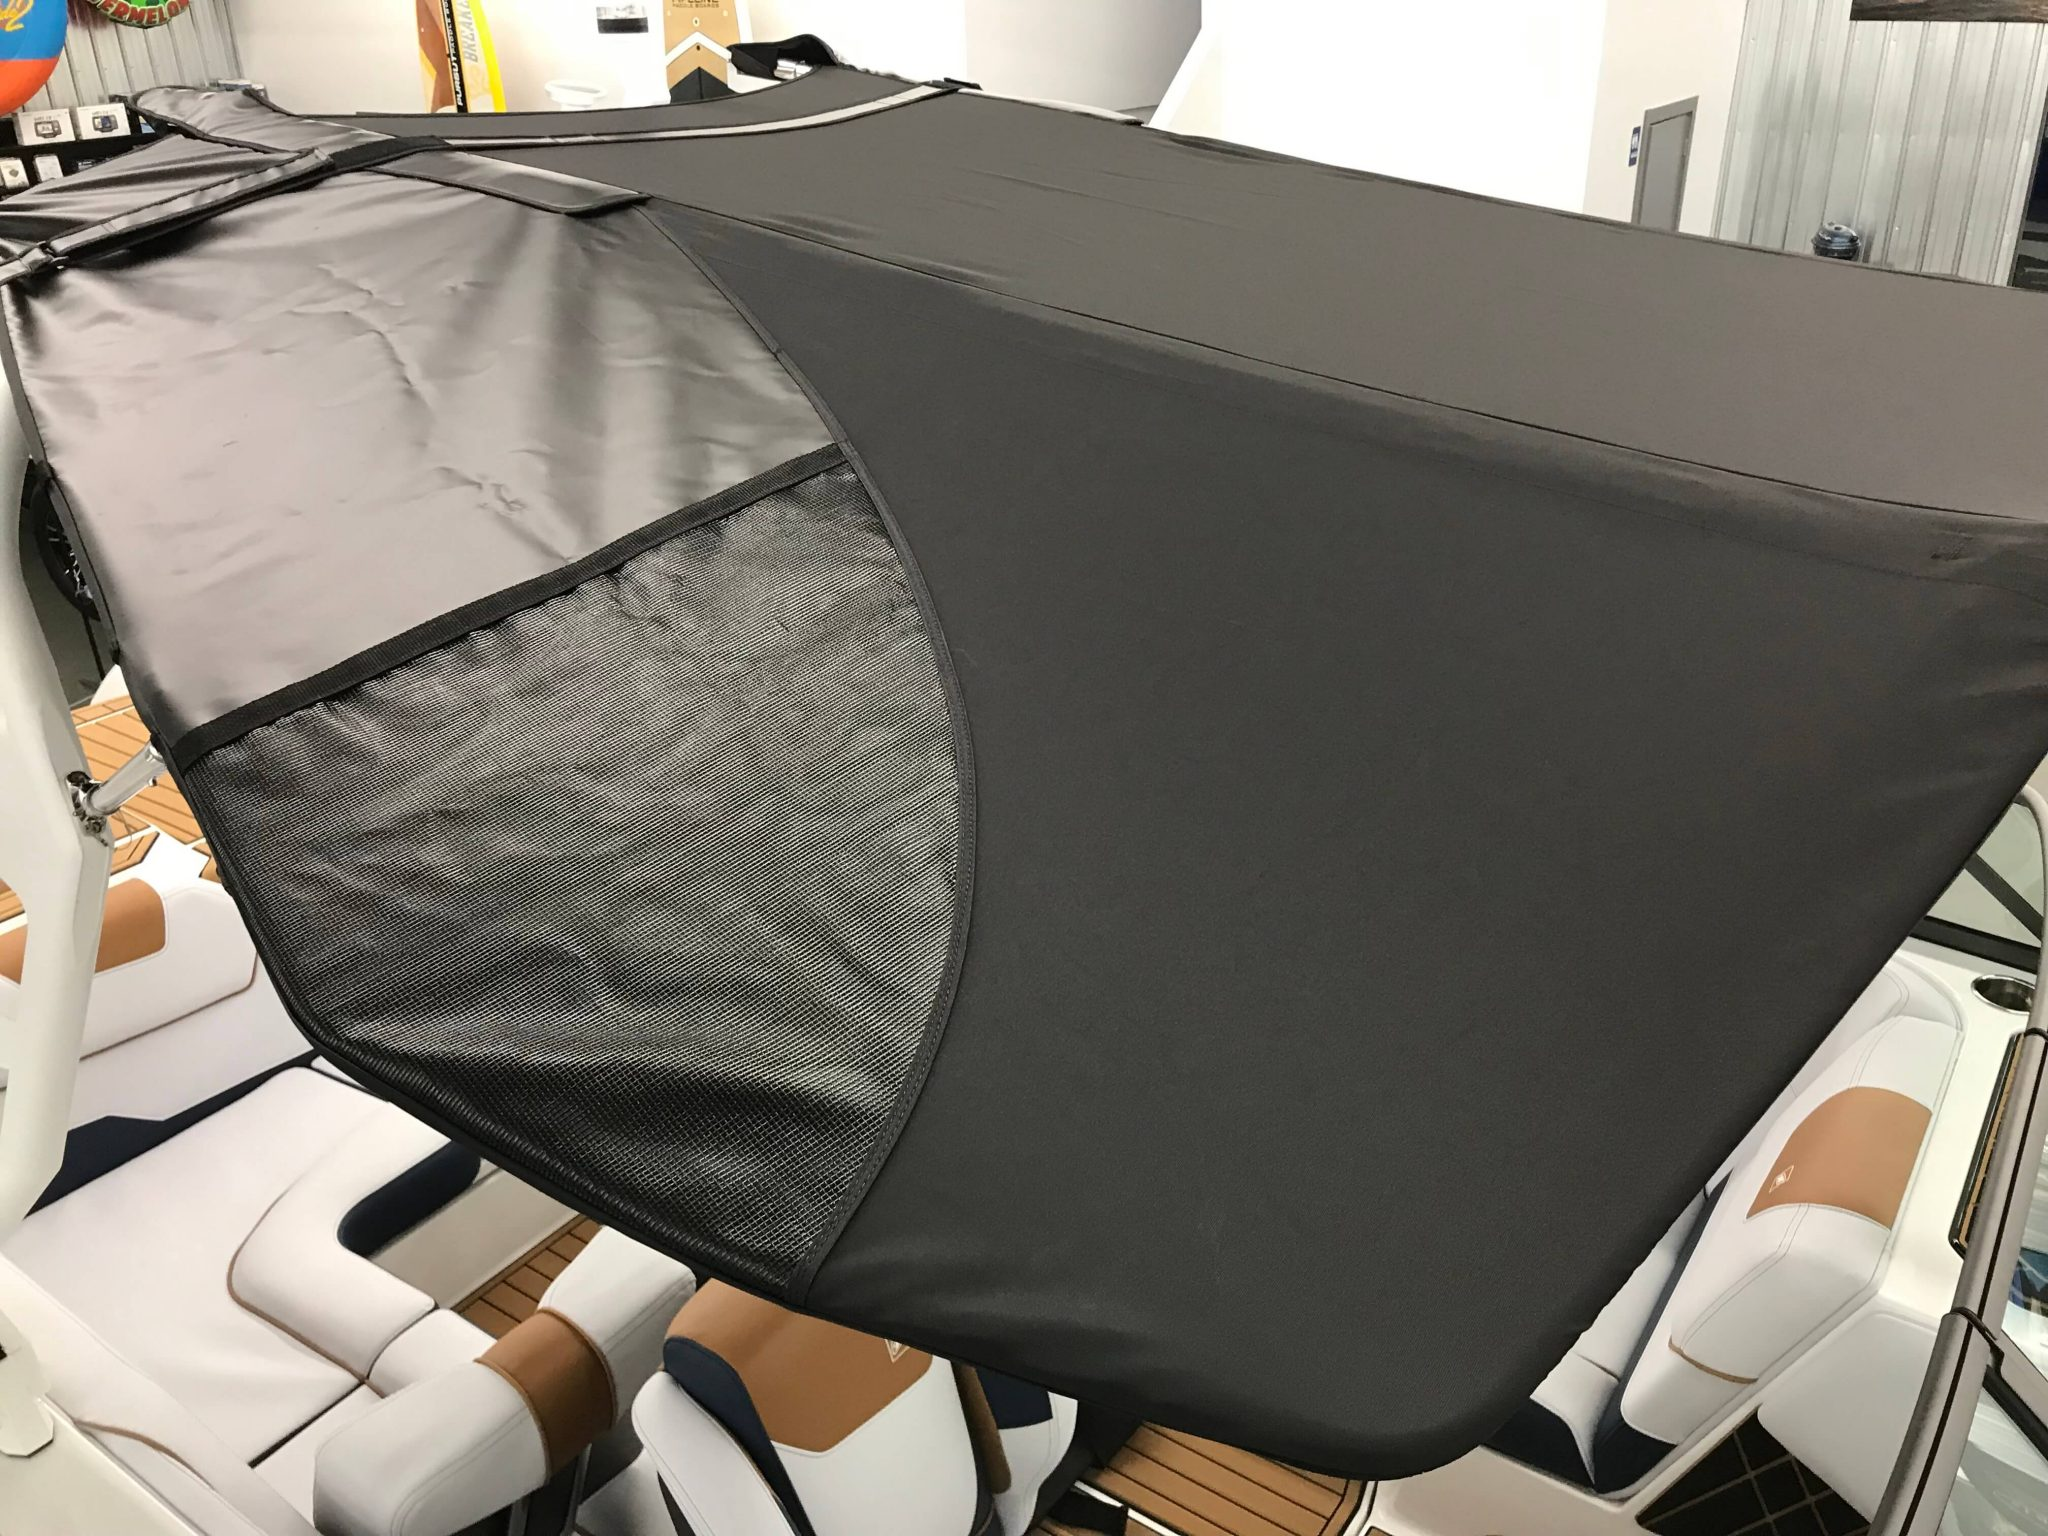 2019 Nautique GS22 Bimini Top Surf Pockets 1